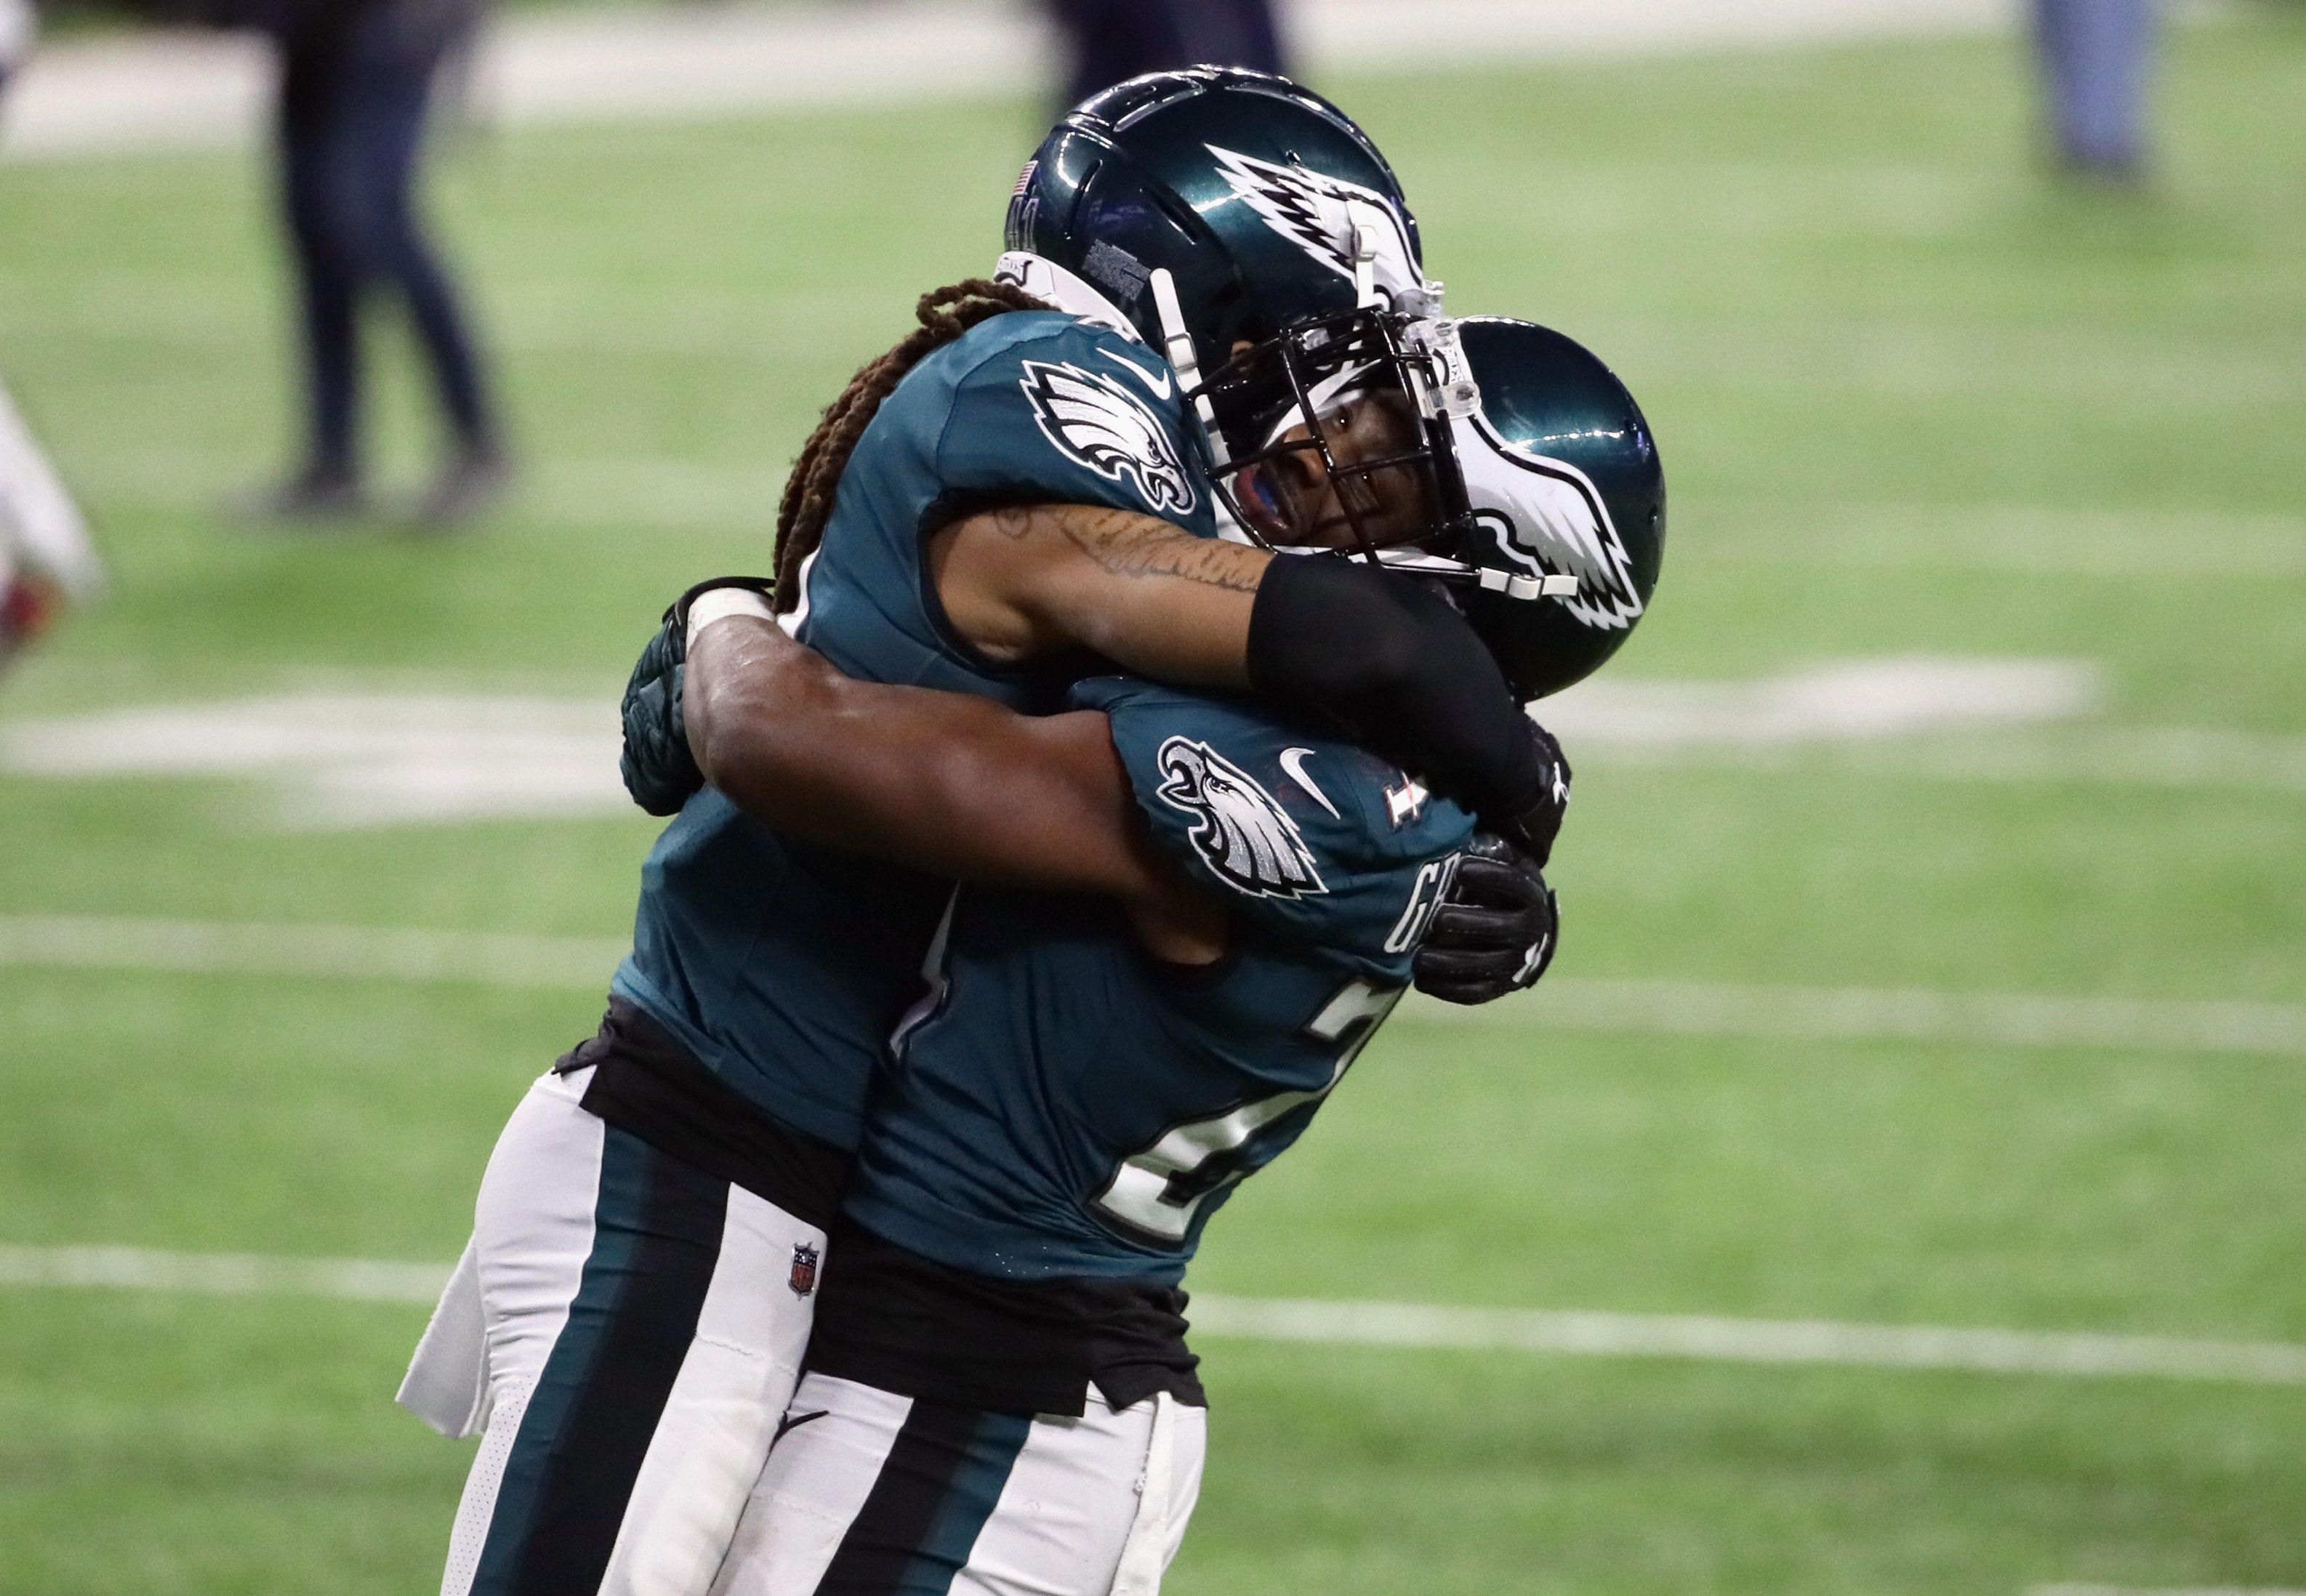 MINNEAPOLIS, MN - FEBRUARY 04:  Ronald Darby #41 and  Corey Graham #24 of the Philadelphia Eagles celebrate winning Super Bowl LII against the New England Patriots 41-33 at U.S. Bank Stadium on February 4, 2018 in Minneapolis, Minnesota.  (Photo by Jonathan Daniel/Getty Images)